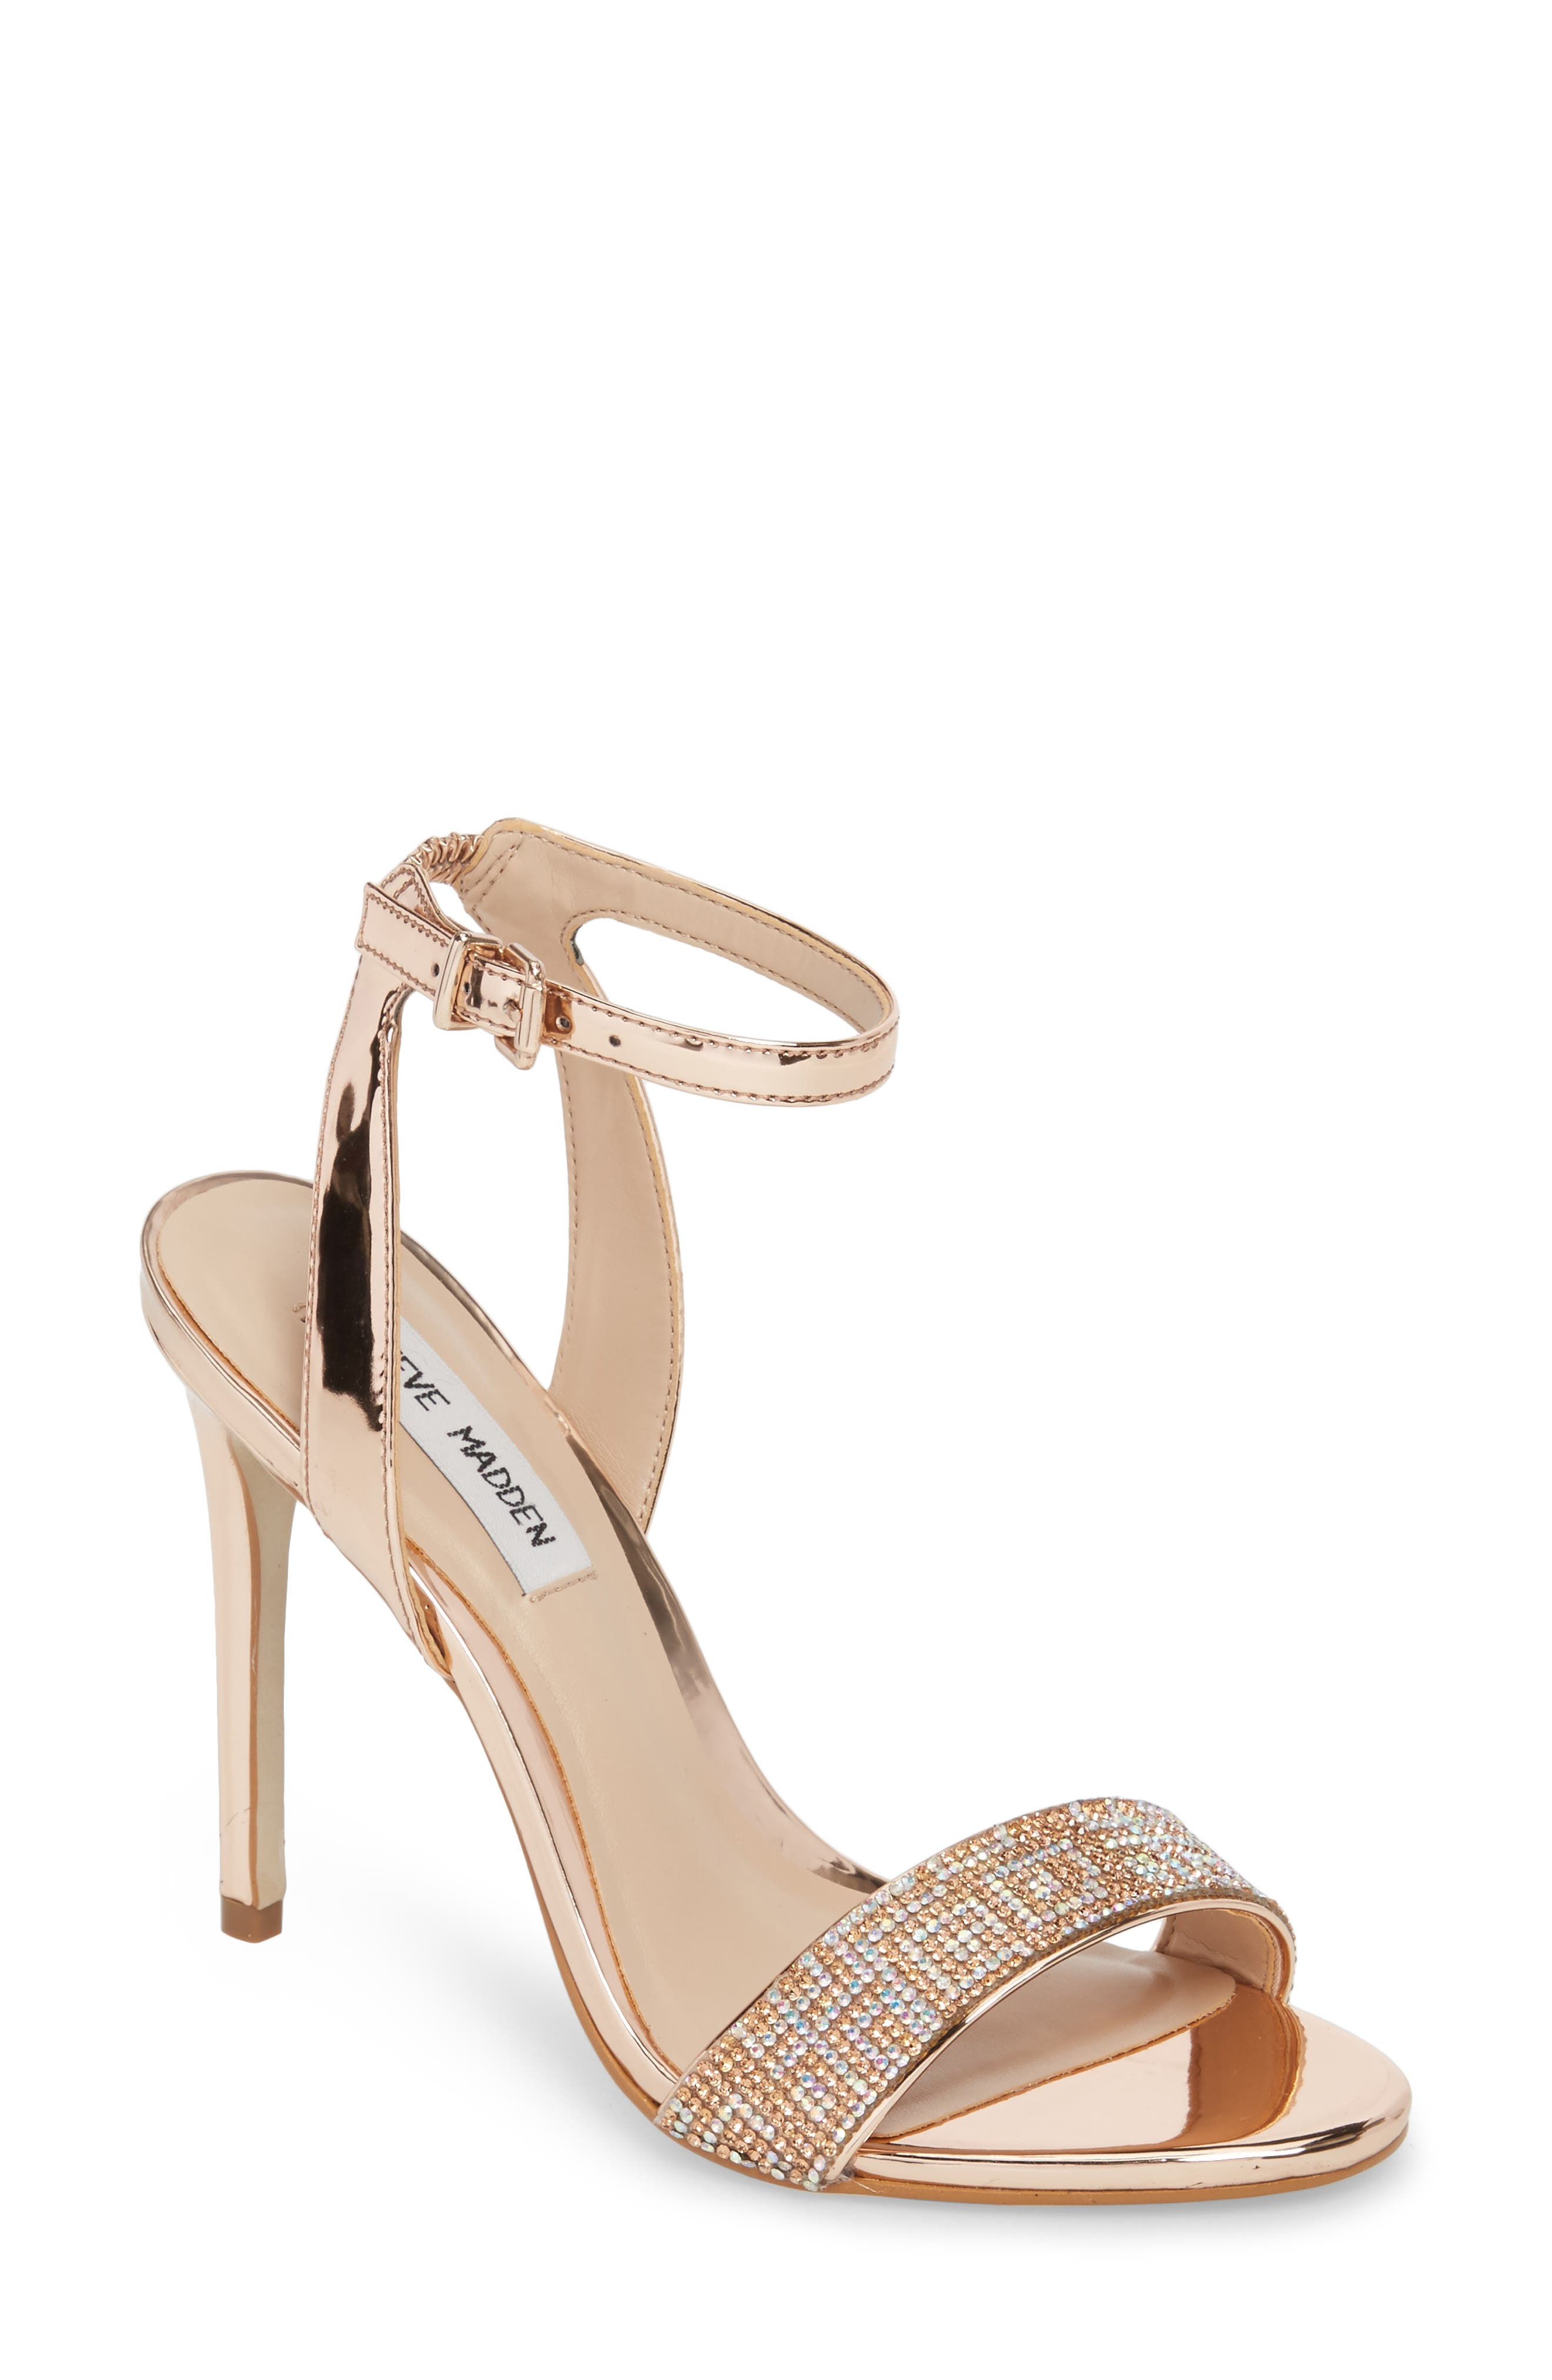 Leona Sandal,                             Main thumbnail 1, color,                             Rose Gold Leather